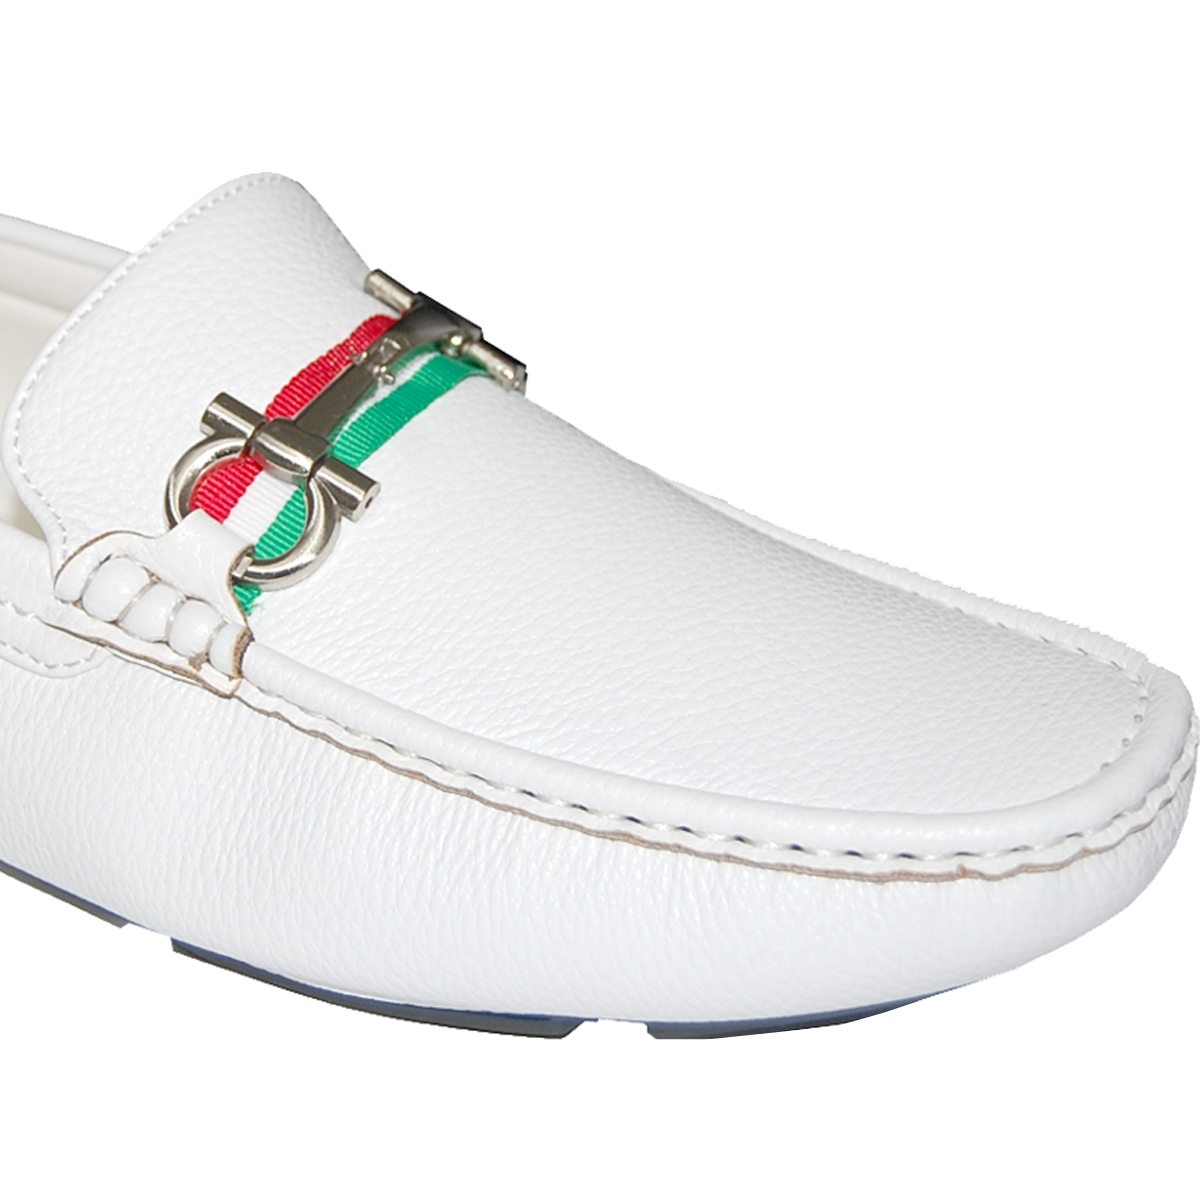 KRAZY SHOE ARTISTS Green White and Red Handcrafted Ornament Mens Loafers